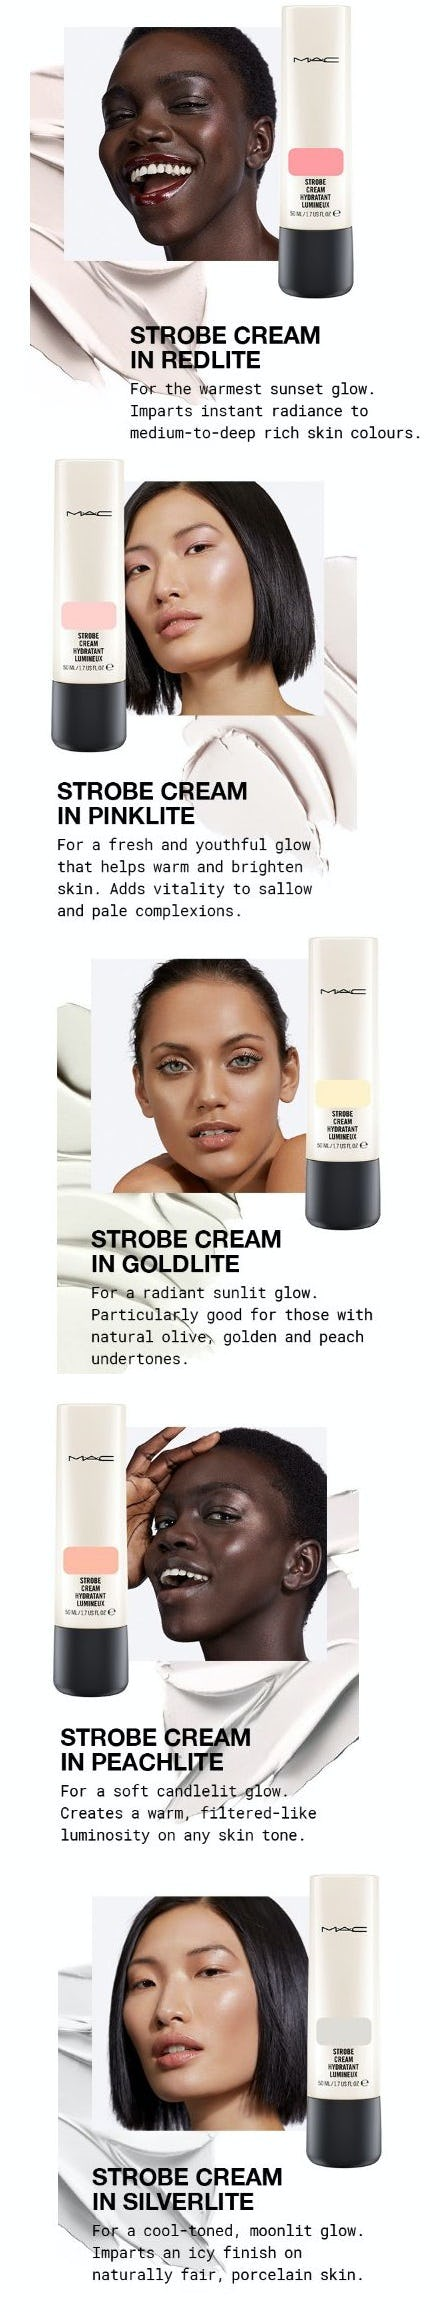 Your Perfect Strobe Cream Shade from M.A.C.